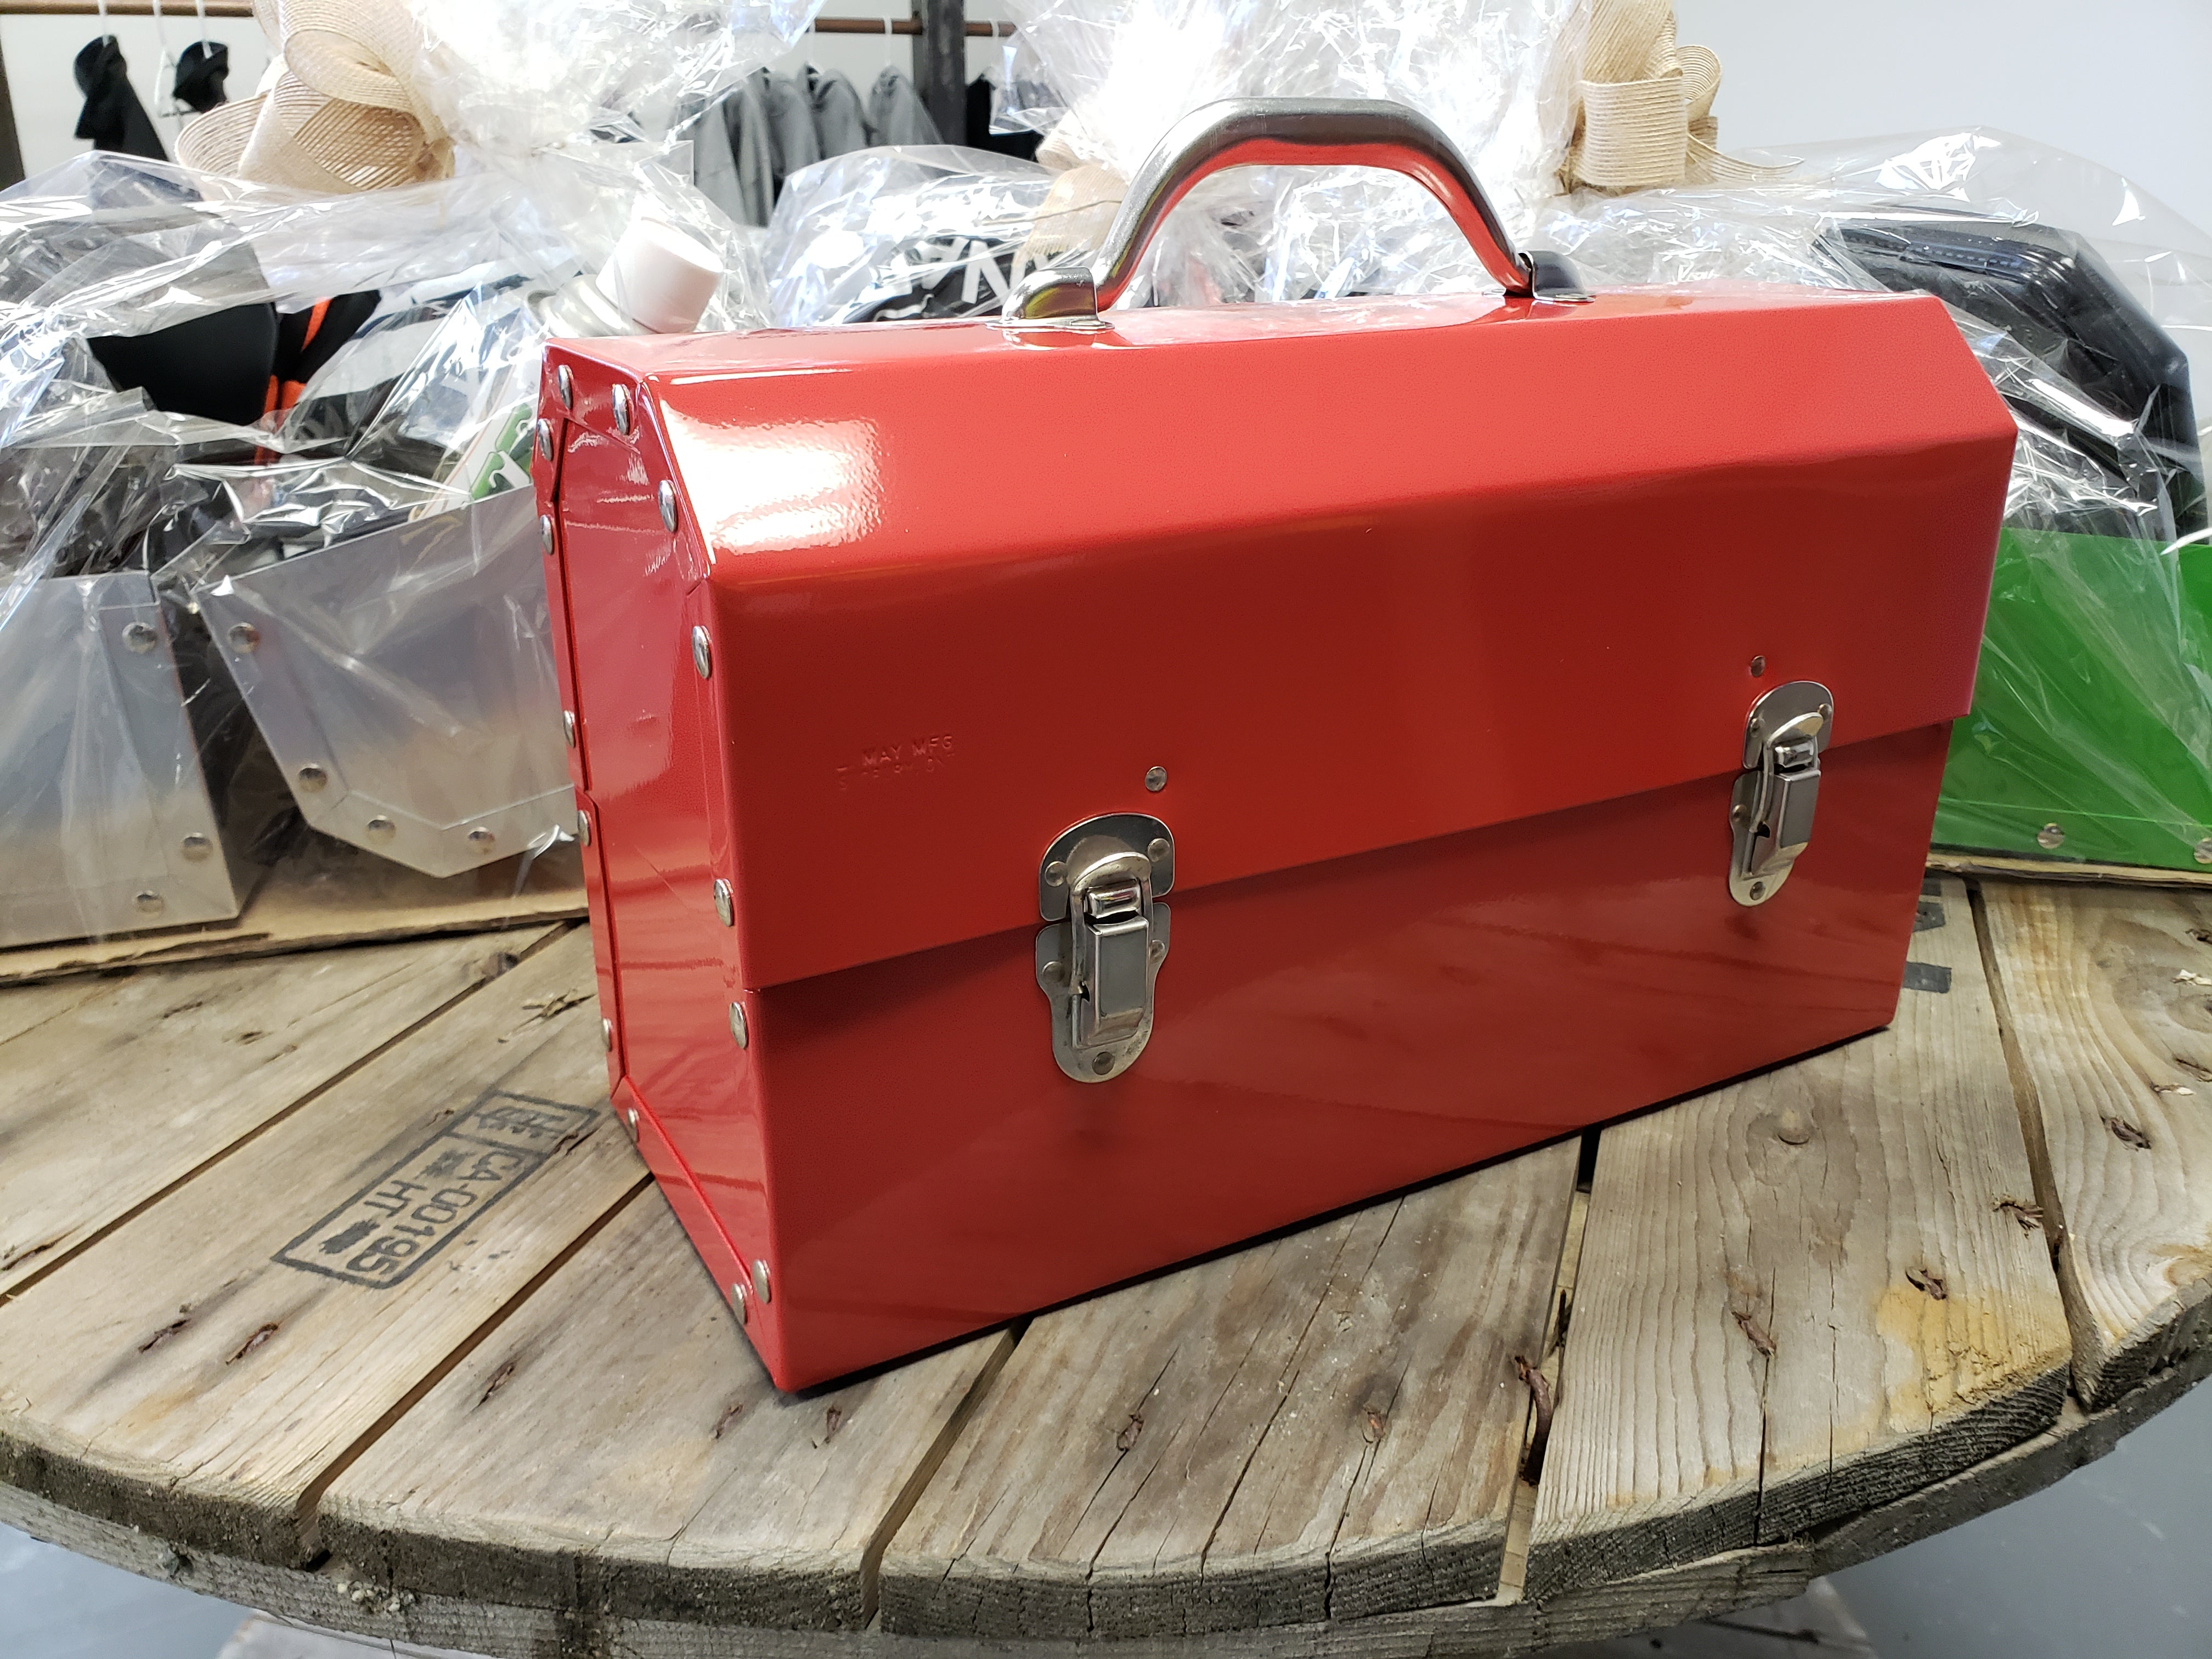 The Original Miners Lunchbox:Powder Coated:Fire Engine Red